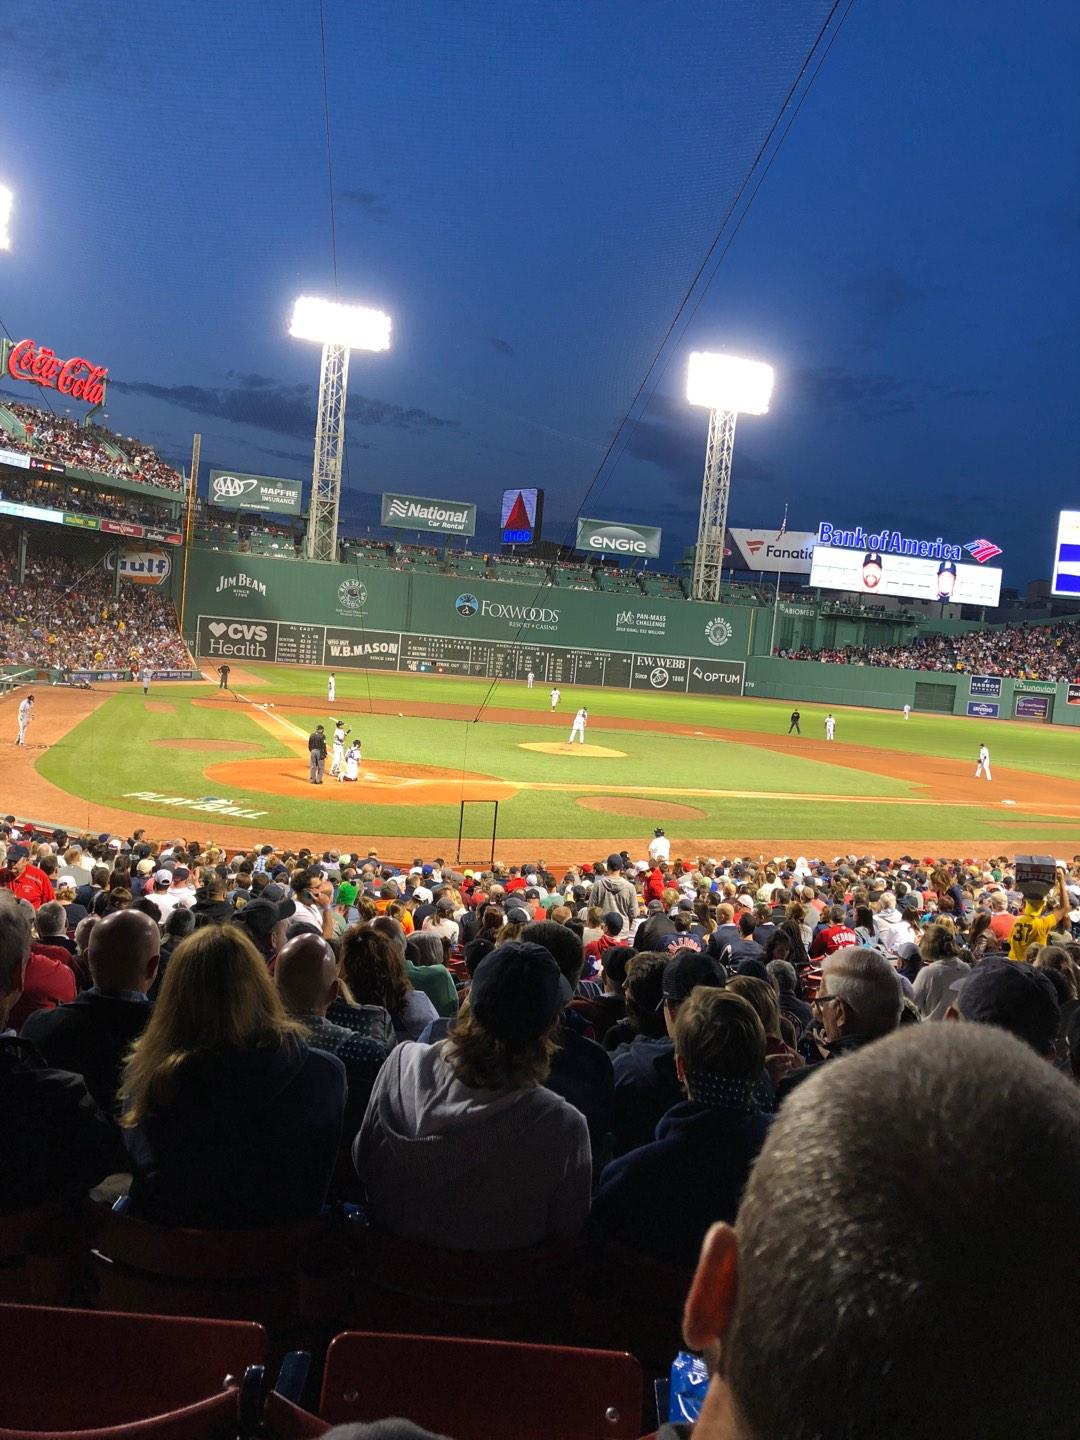 Fenway Park Section Loge Box 125 Row MM Seat 9